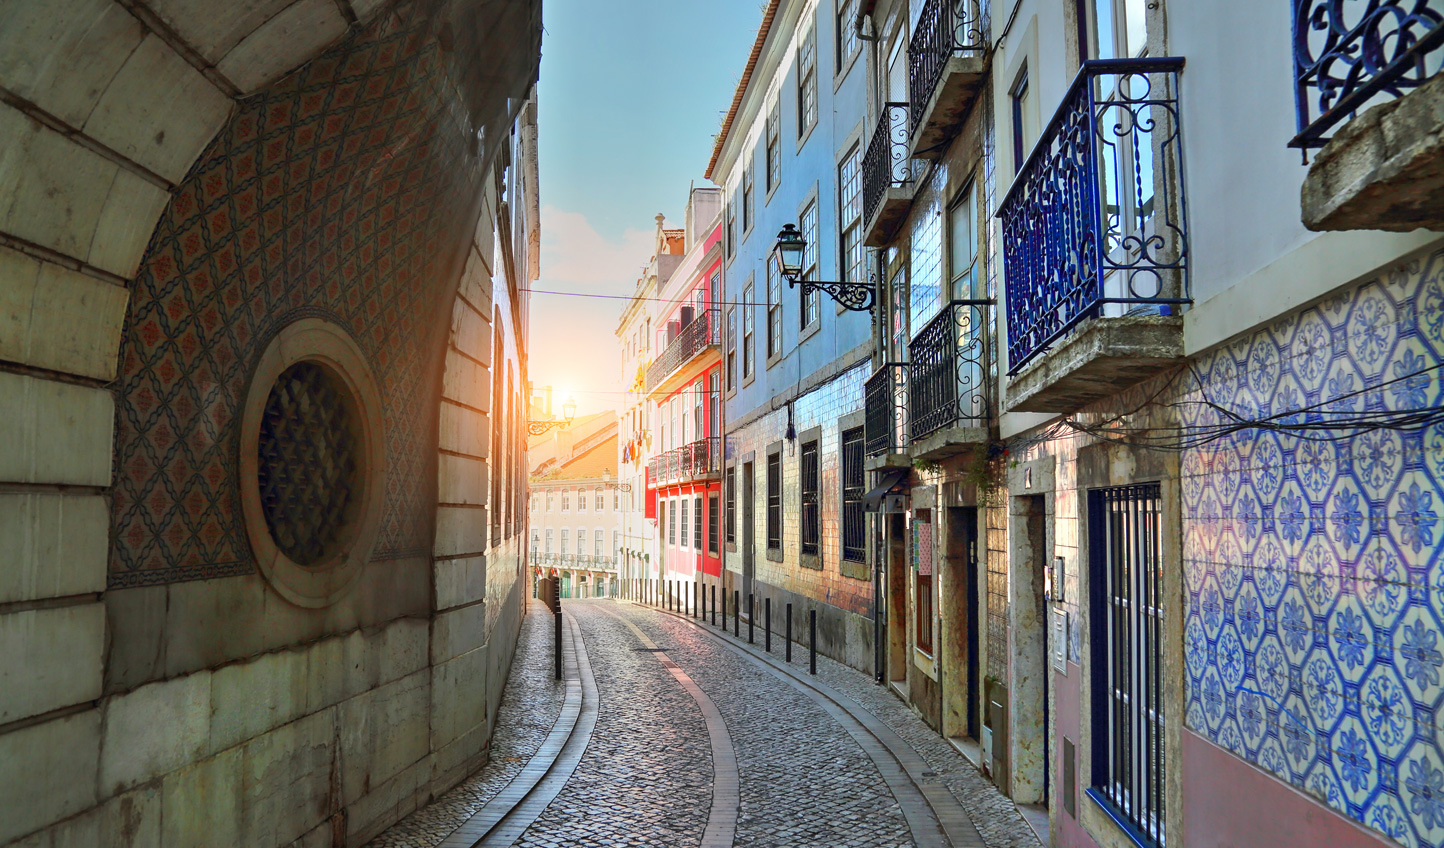 Wind through the colourful streets of Lisbon